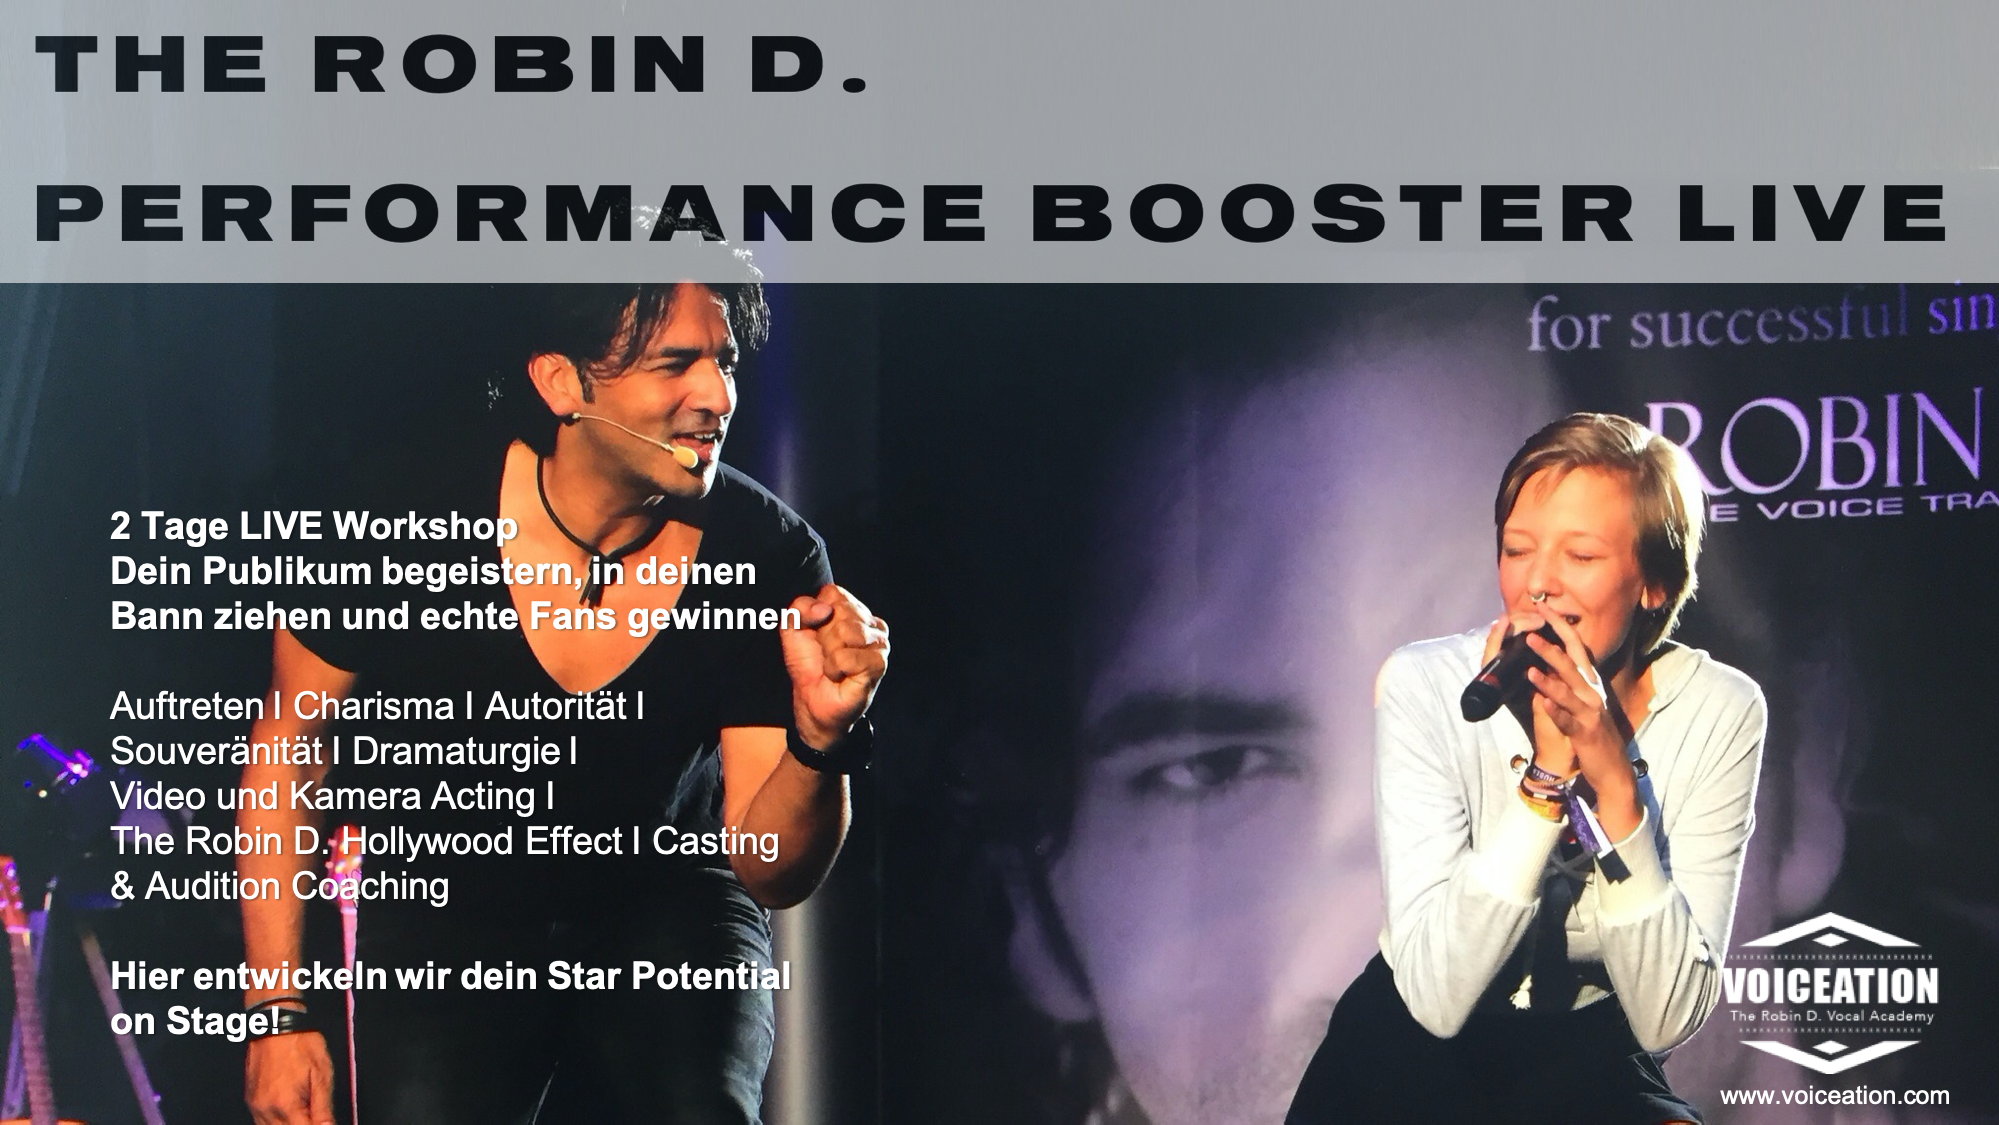 The Robin D. Performance Booster LIVE